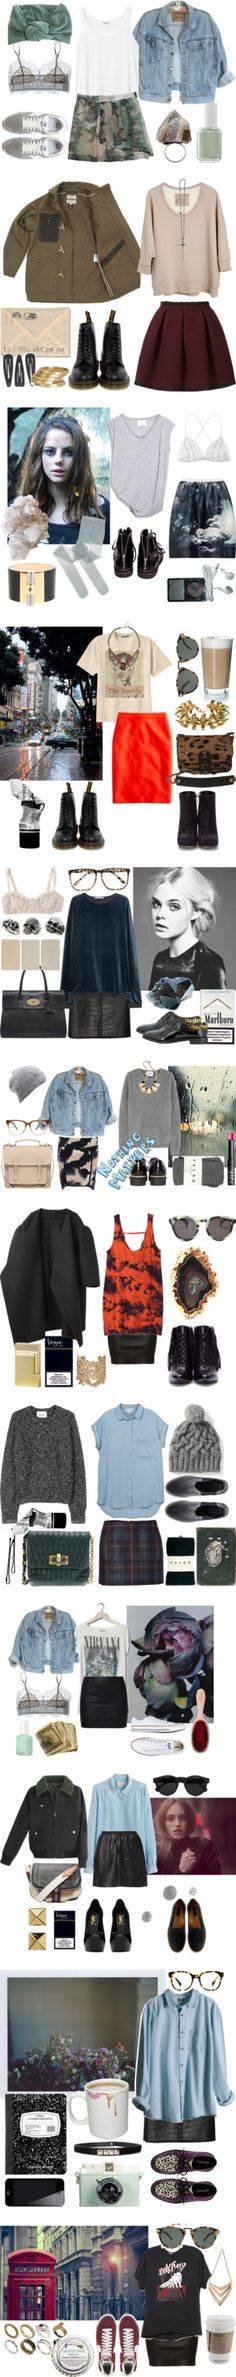 """""""Skirts"""" by kelly-m-o on Polyvore"""